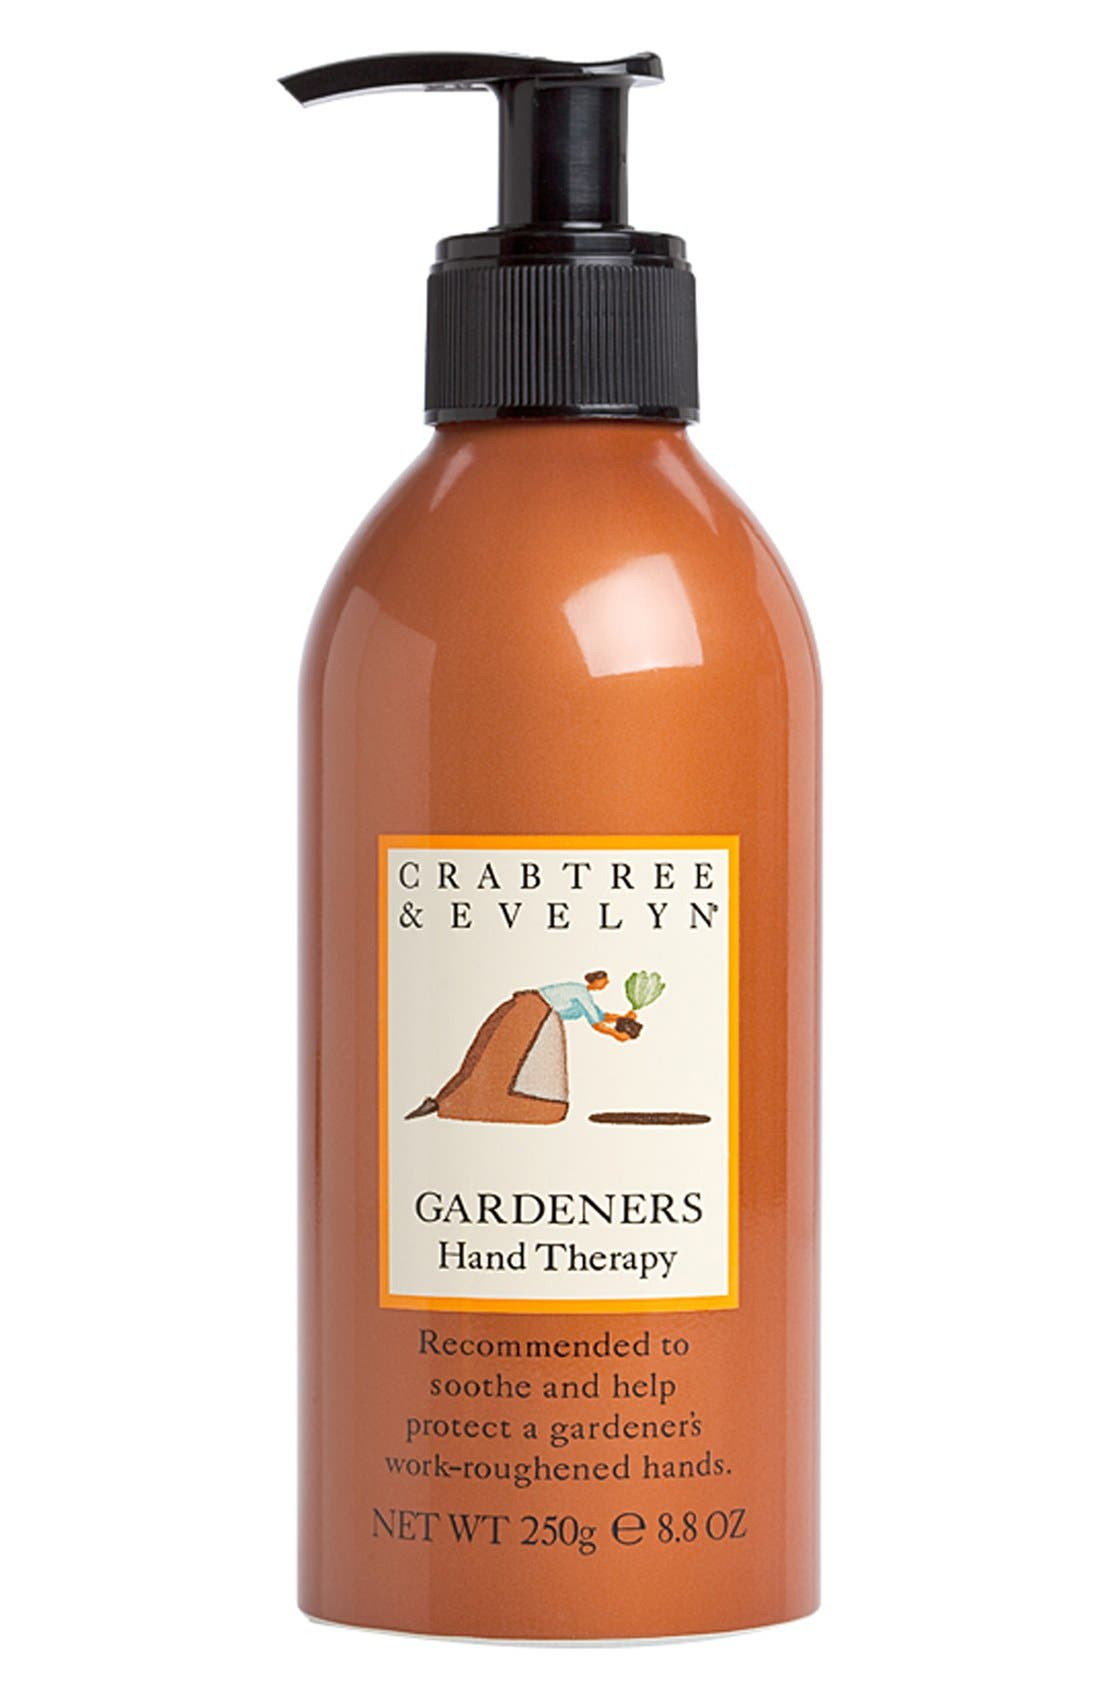 Crabtree & Evelyn 'Gardeners' Hand Therapy Pump (8.8 oz.)